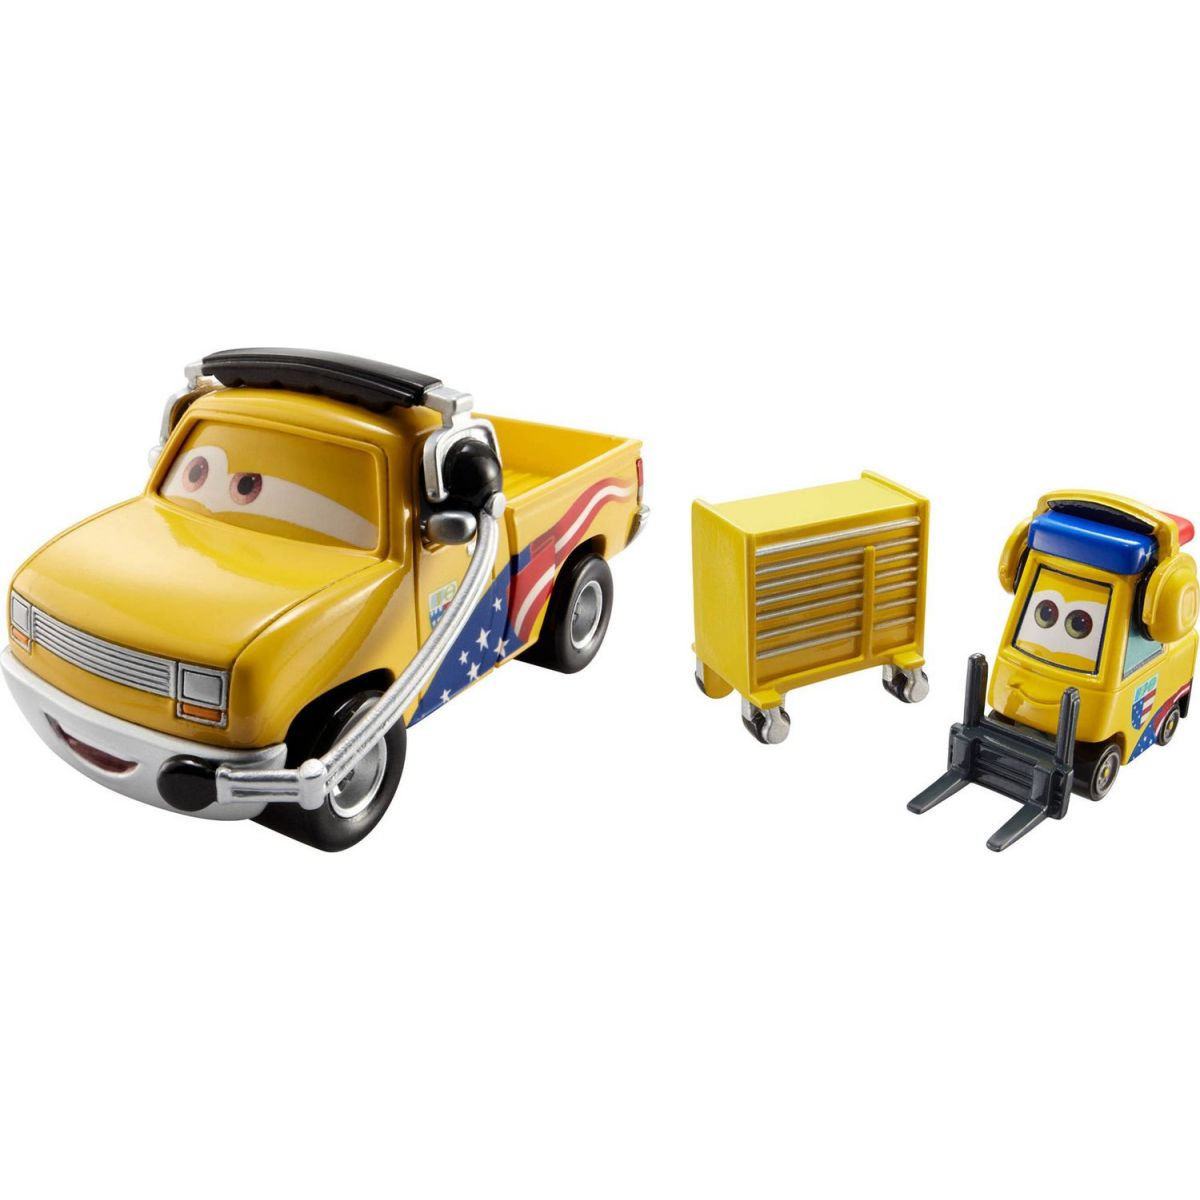 Cars 2 autíčka 2ks Mattel Y0506 - Jeff Gorvette Pitty a John Lassetire